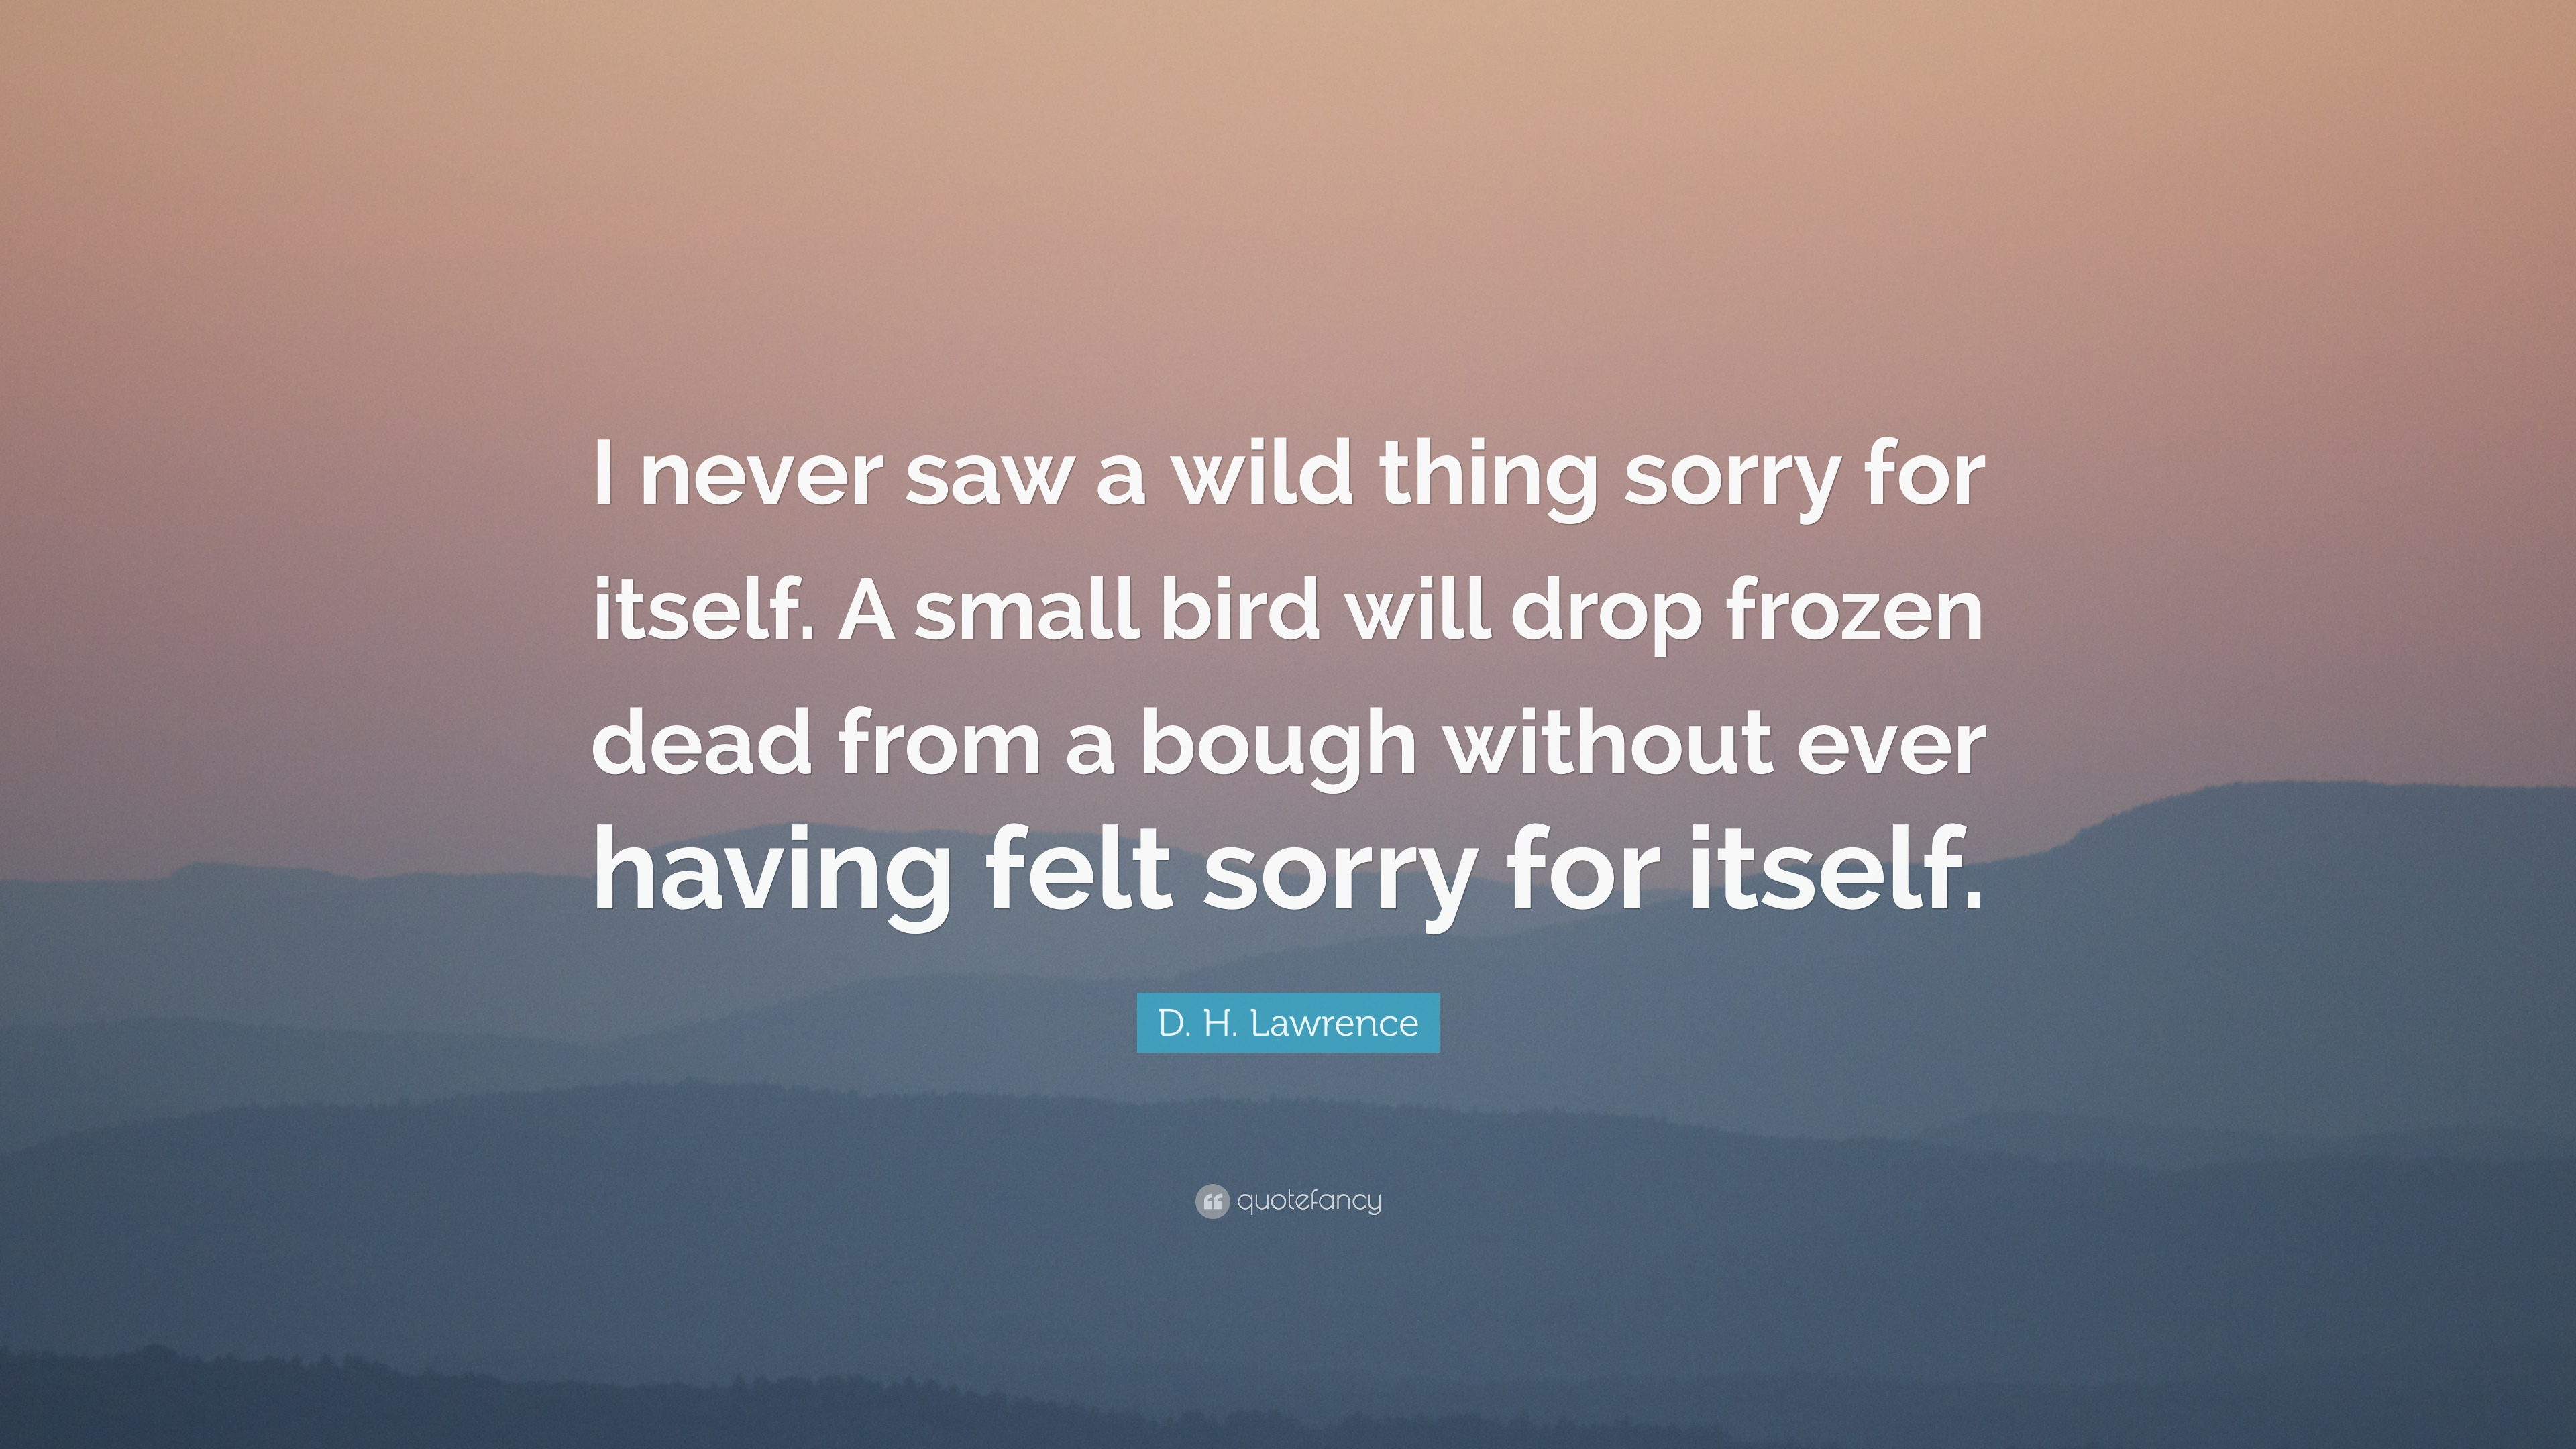 dh lawrence wild thing